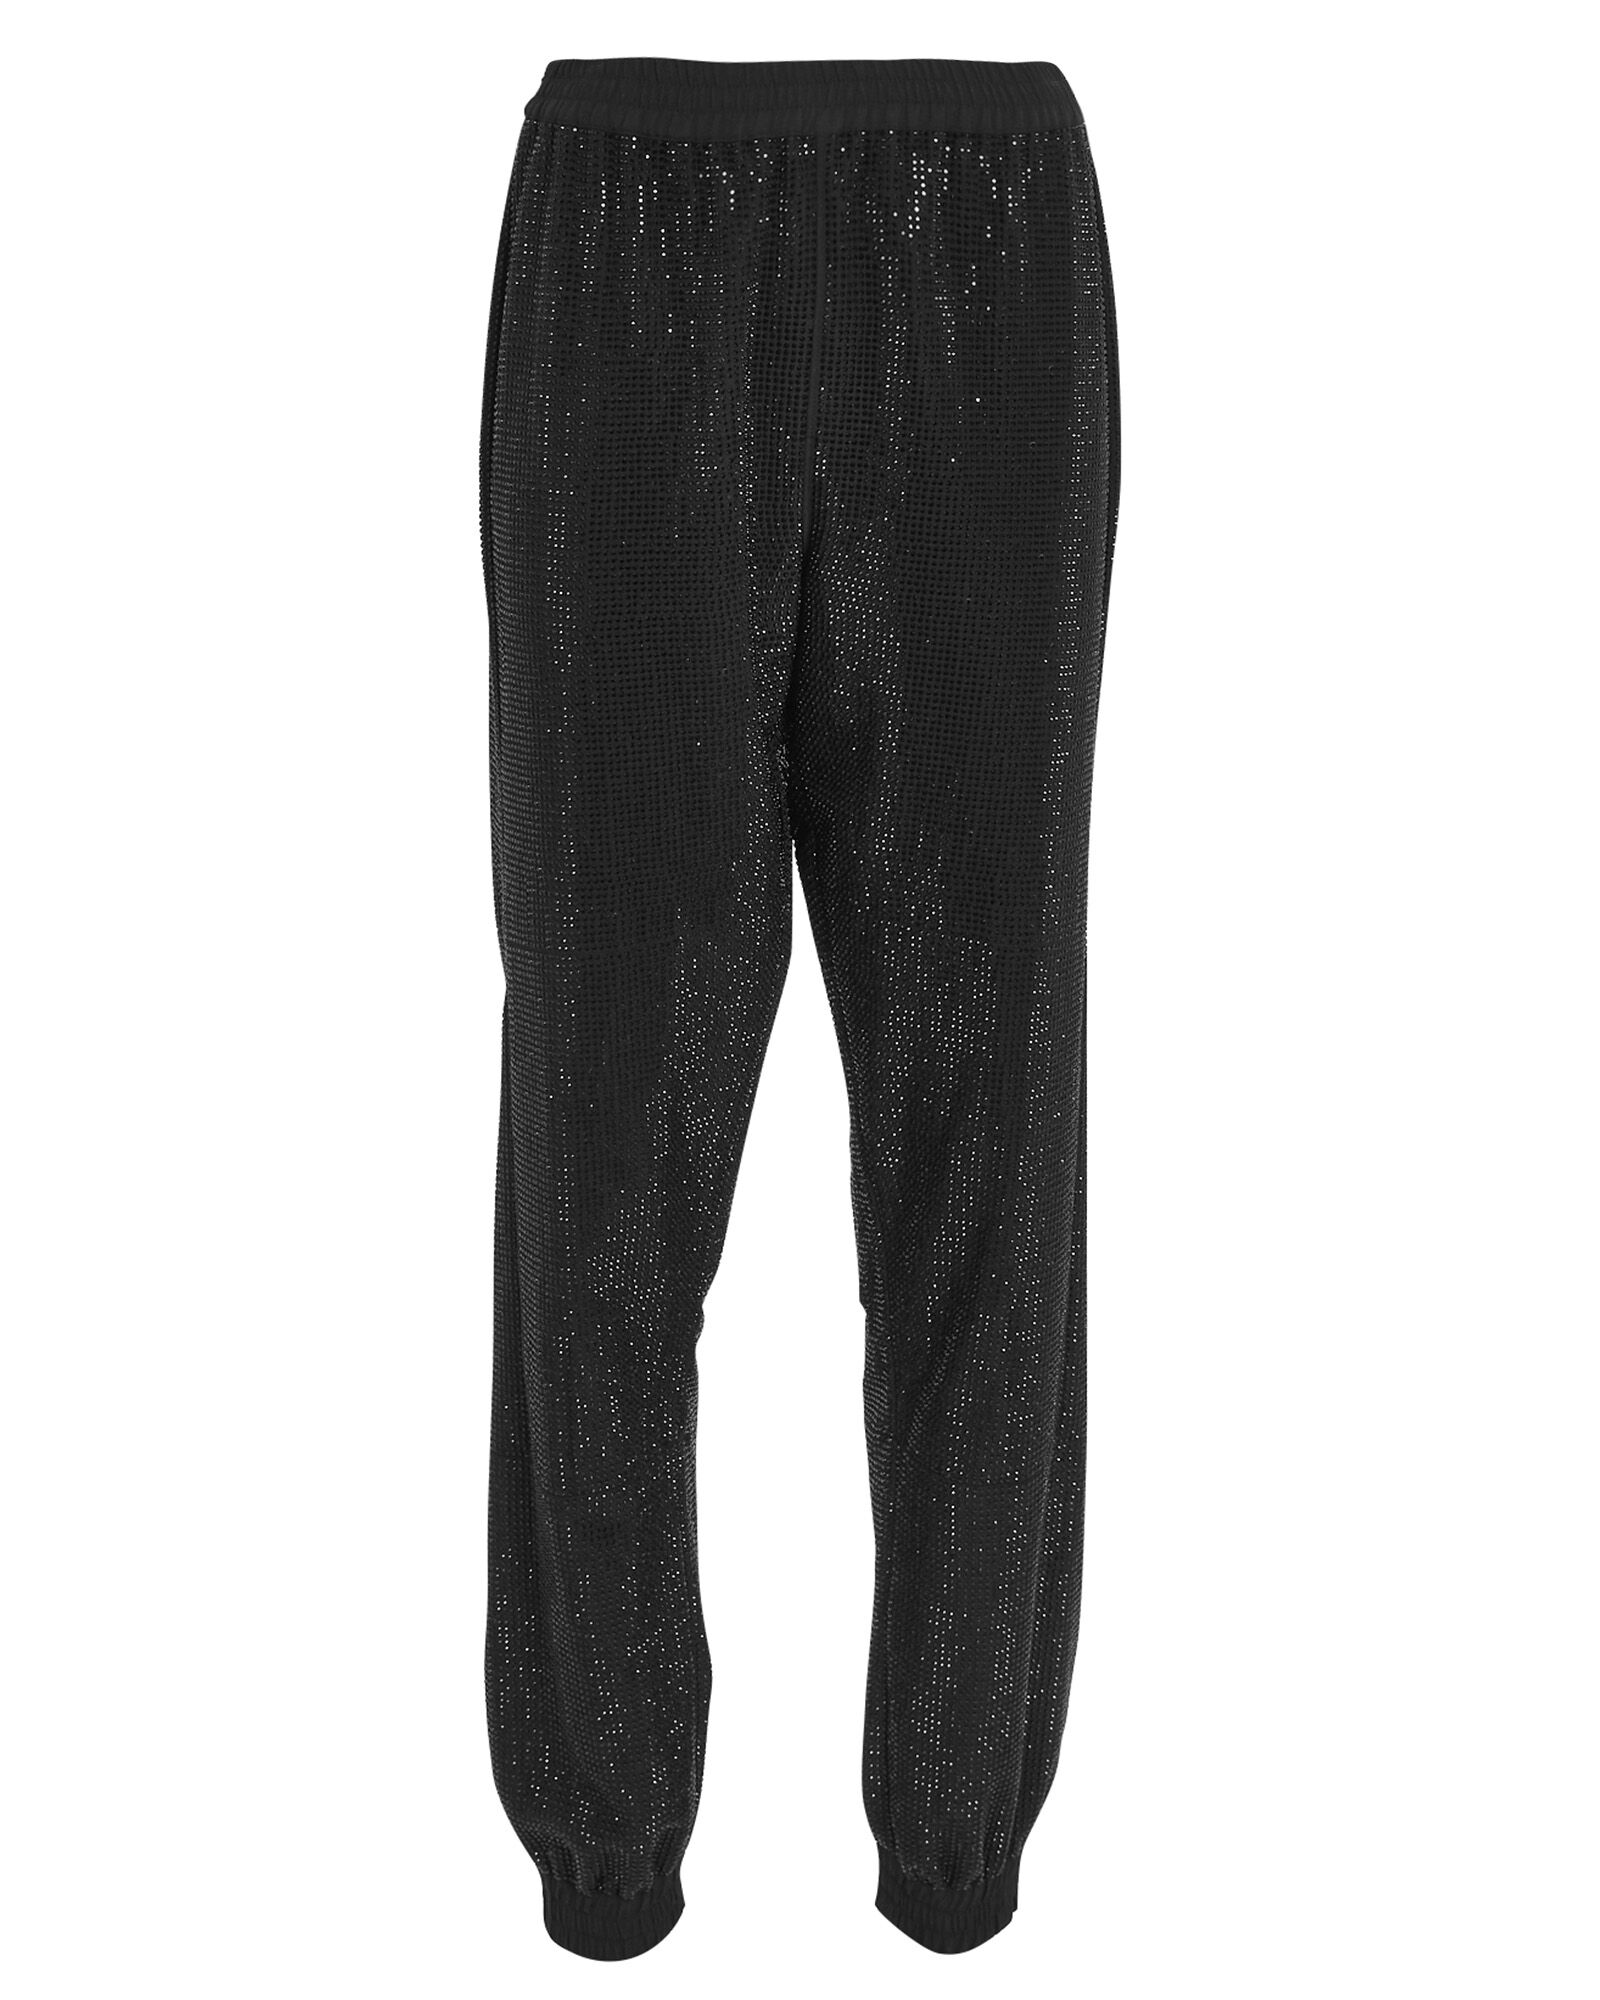 Embellished Finn Joggers Sweatpants, BLACK, hi-res